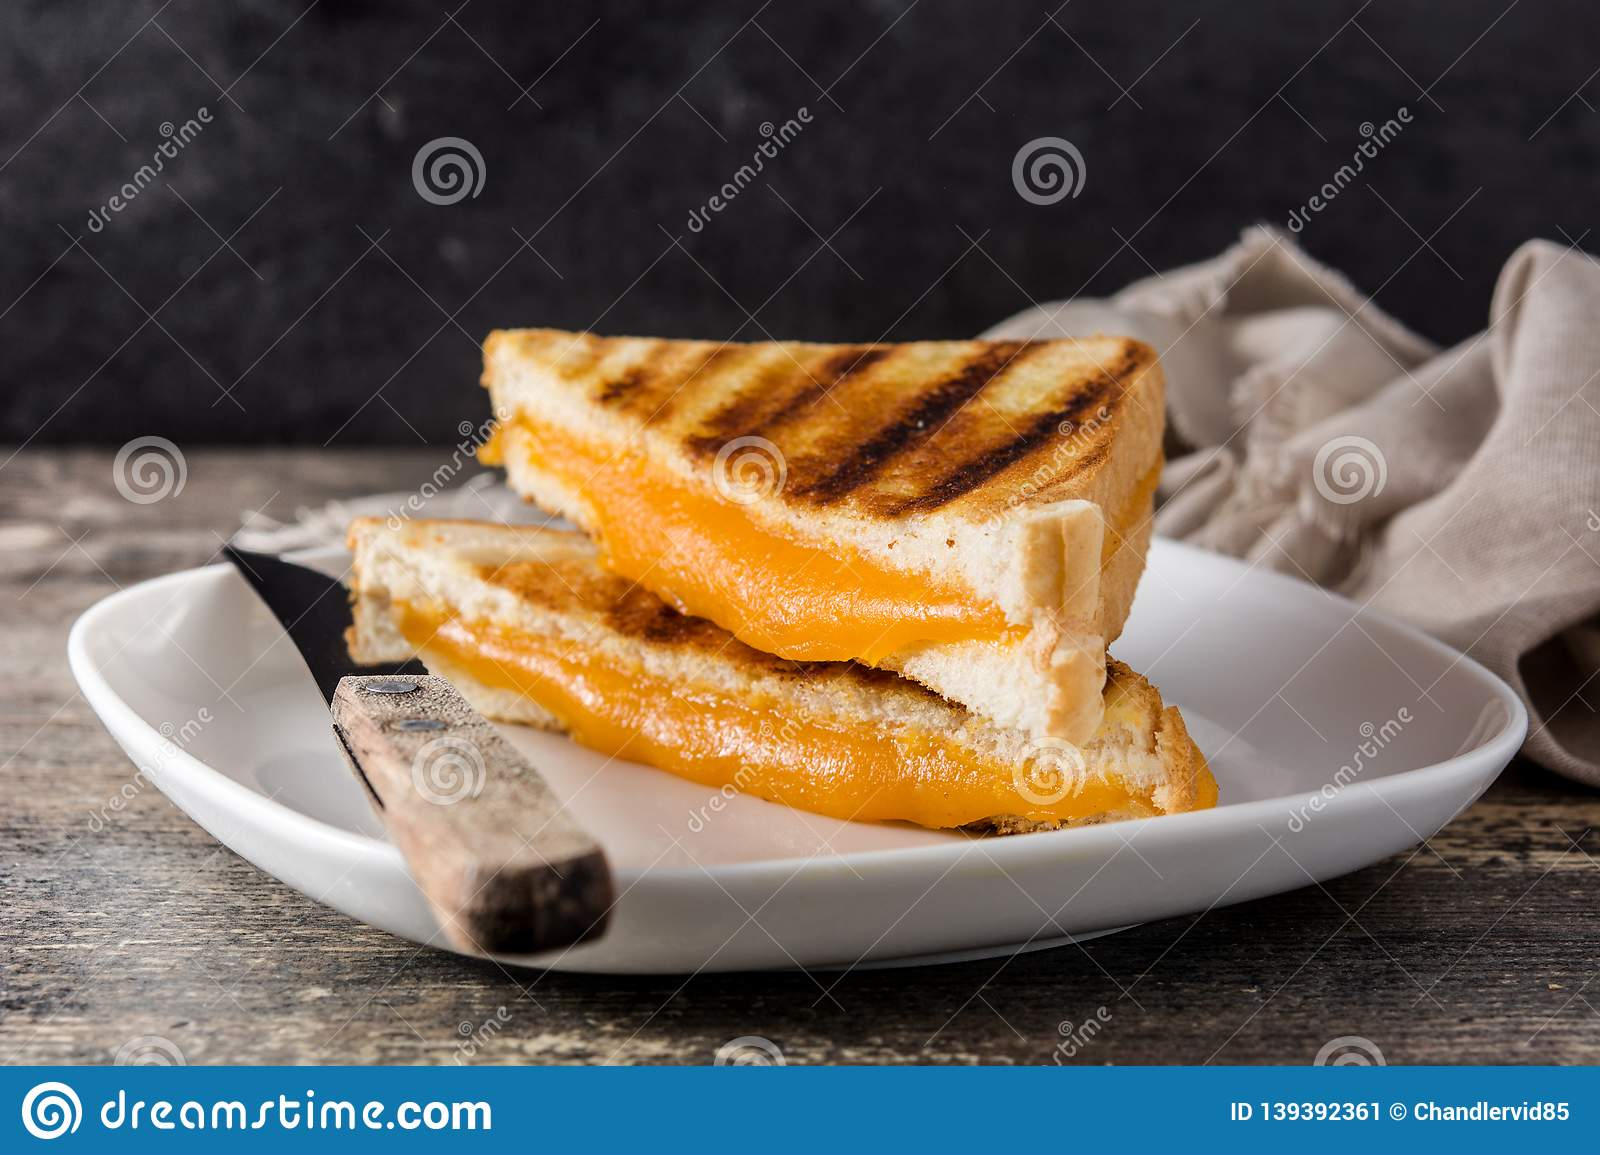 Grilled cheese sandwich on wood